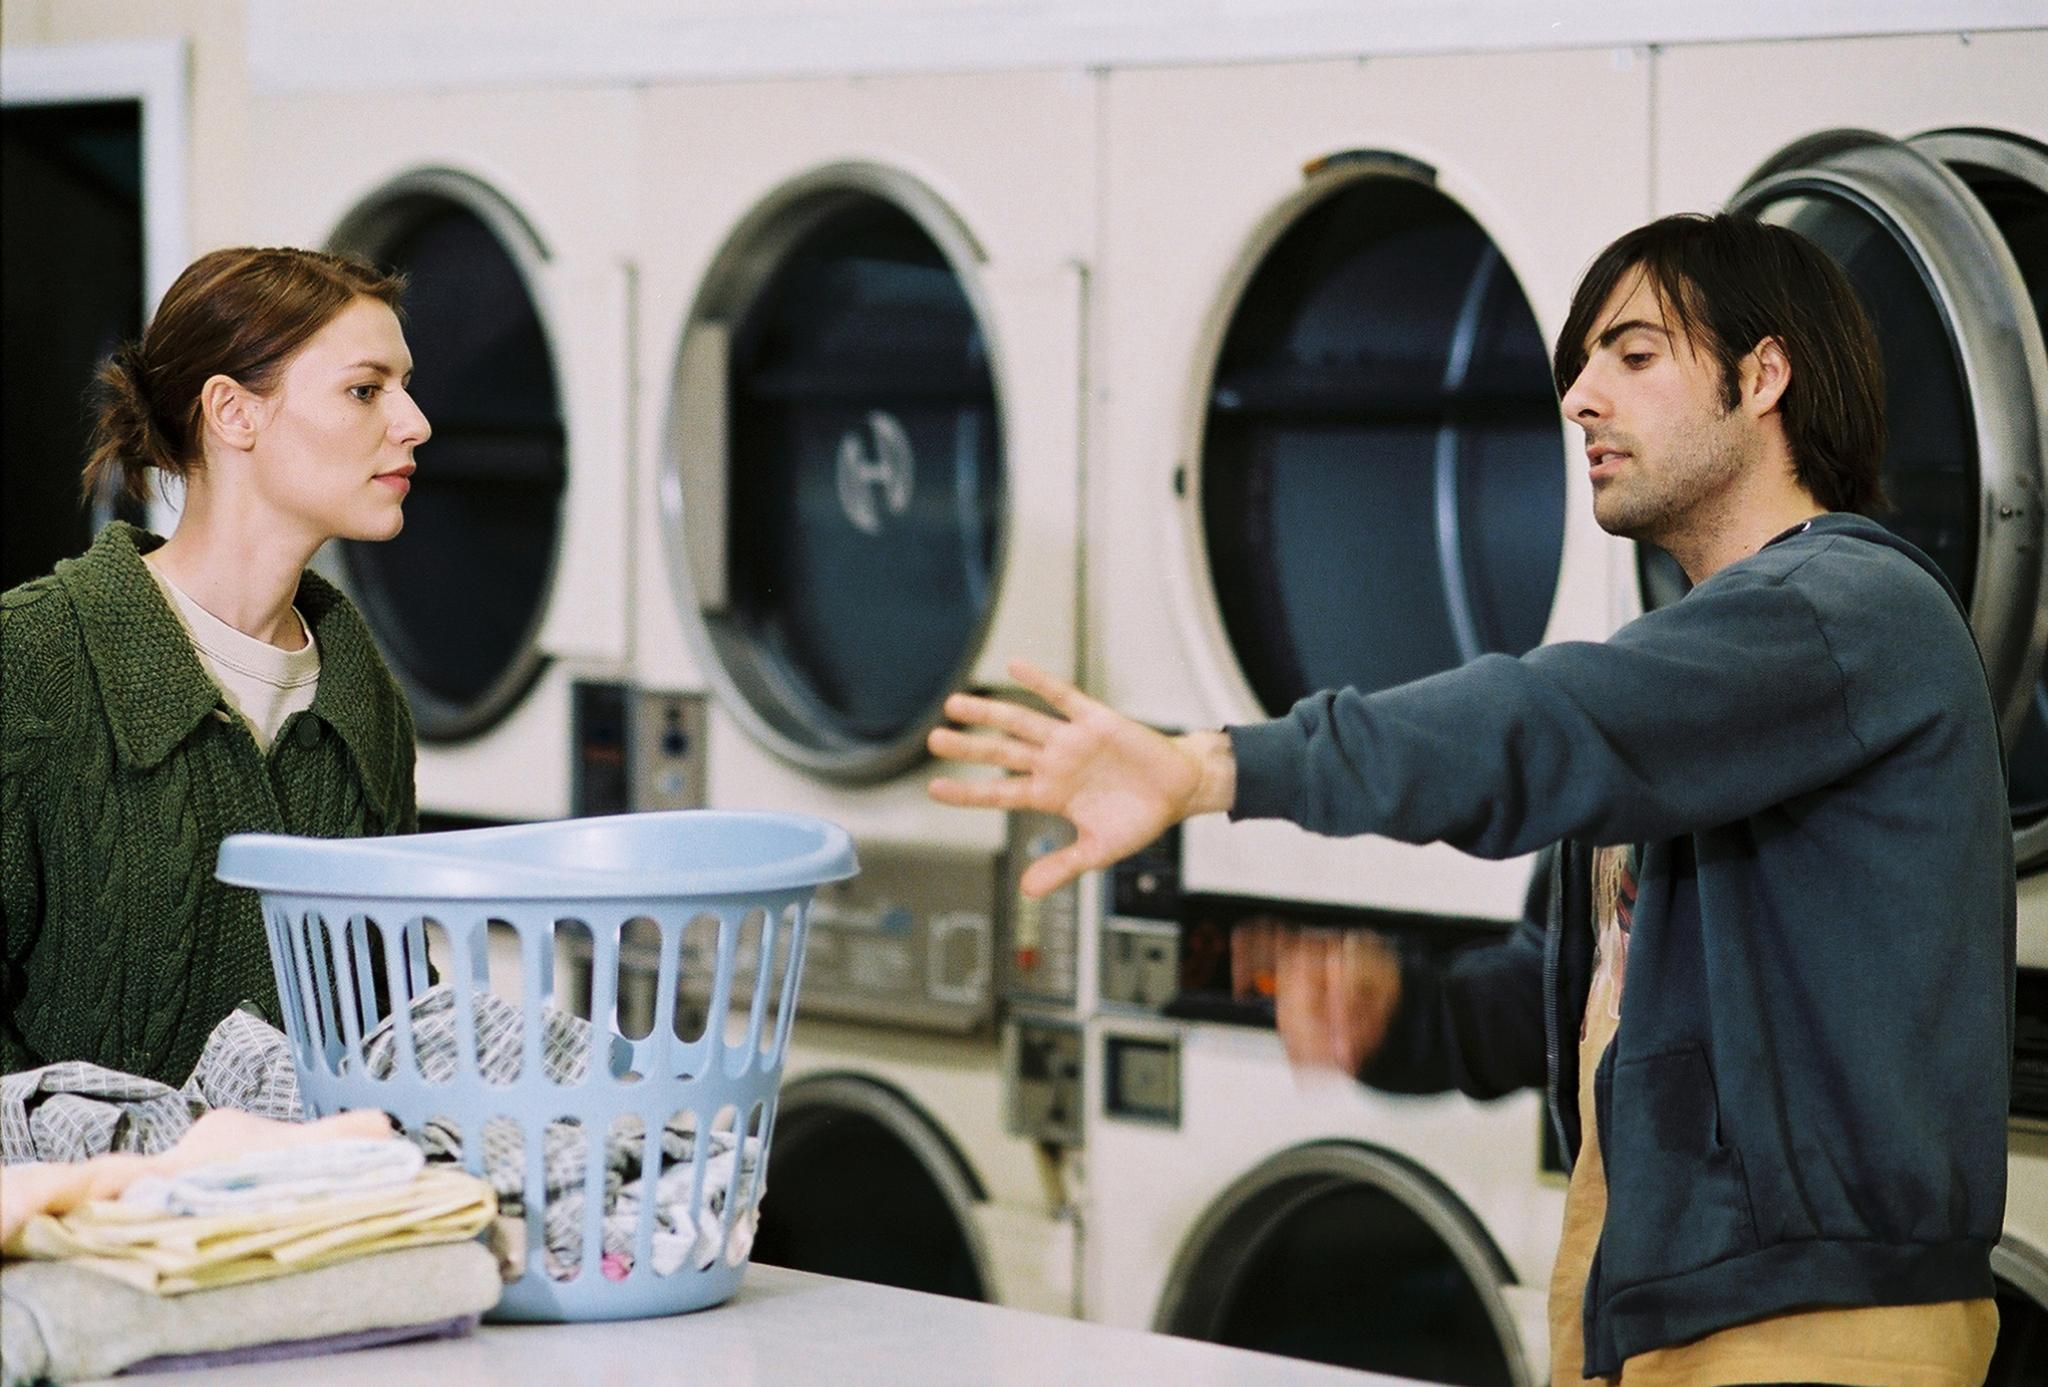 still-of-claire-danes-and-jason-schwartzman-in-shopgirl-(2005)